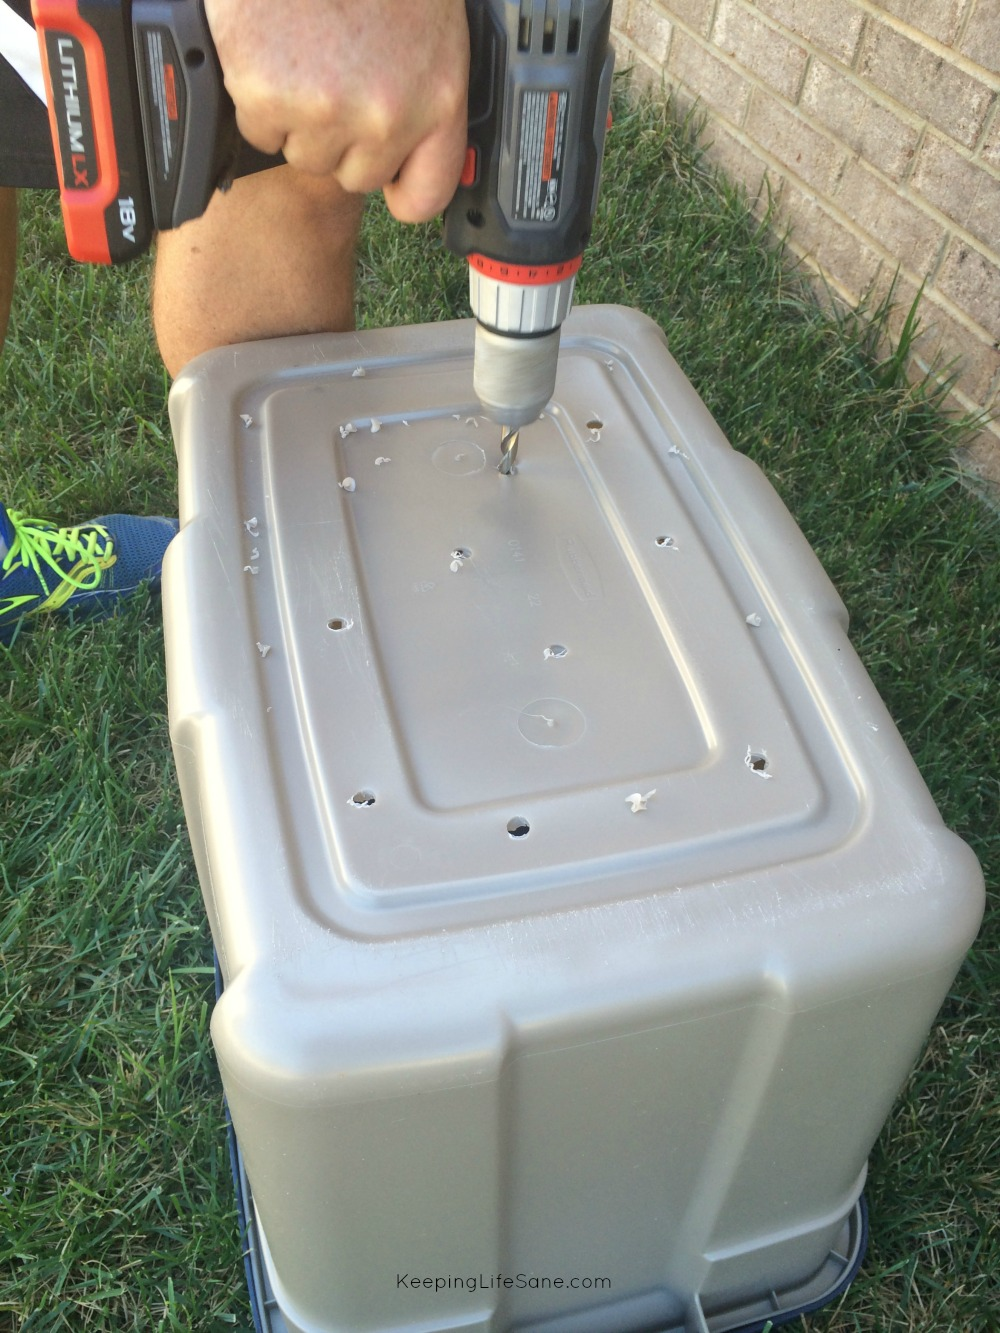 Plastic Rubbermaid bin that's upside down in grass with a man's hand drilling holes in the bottom.